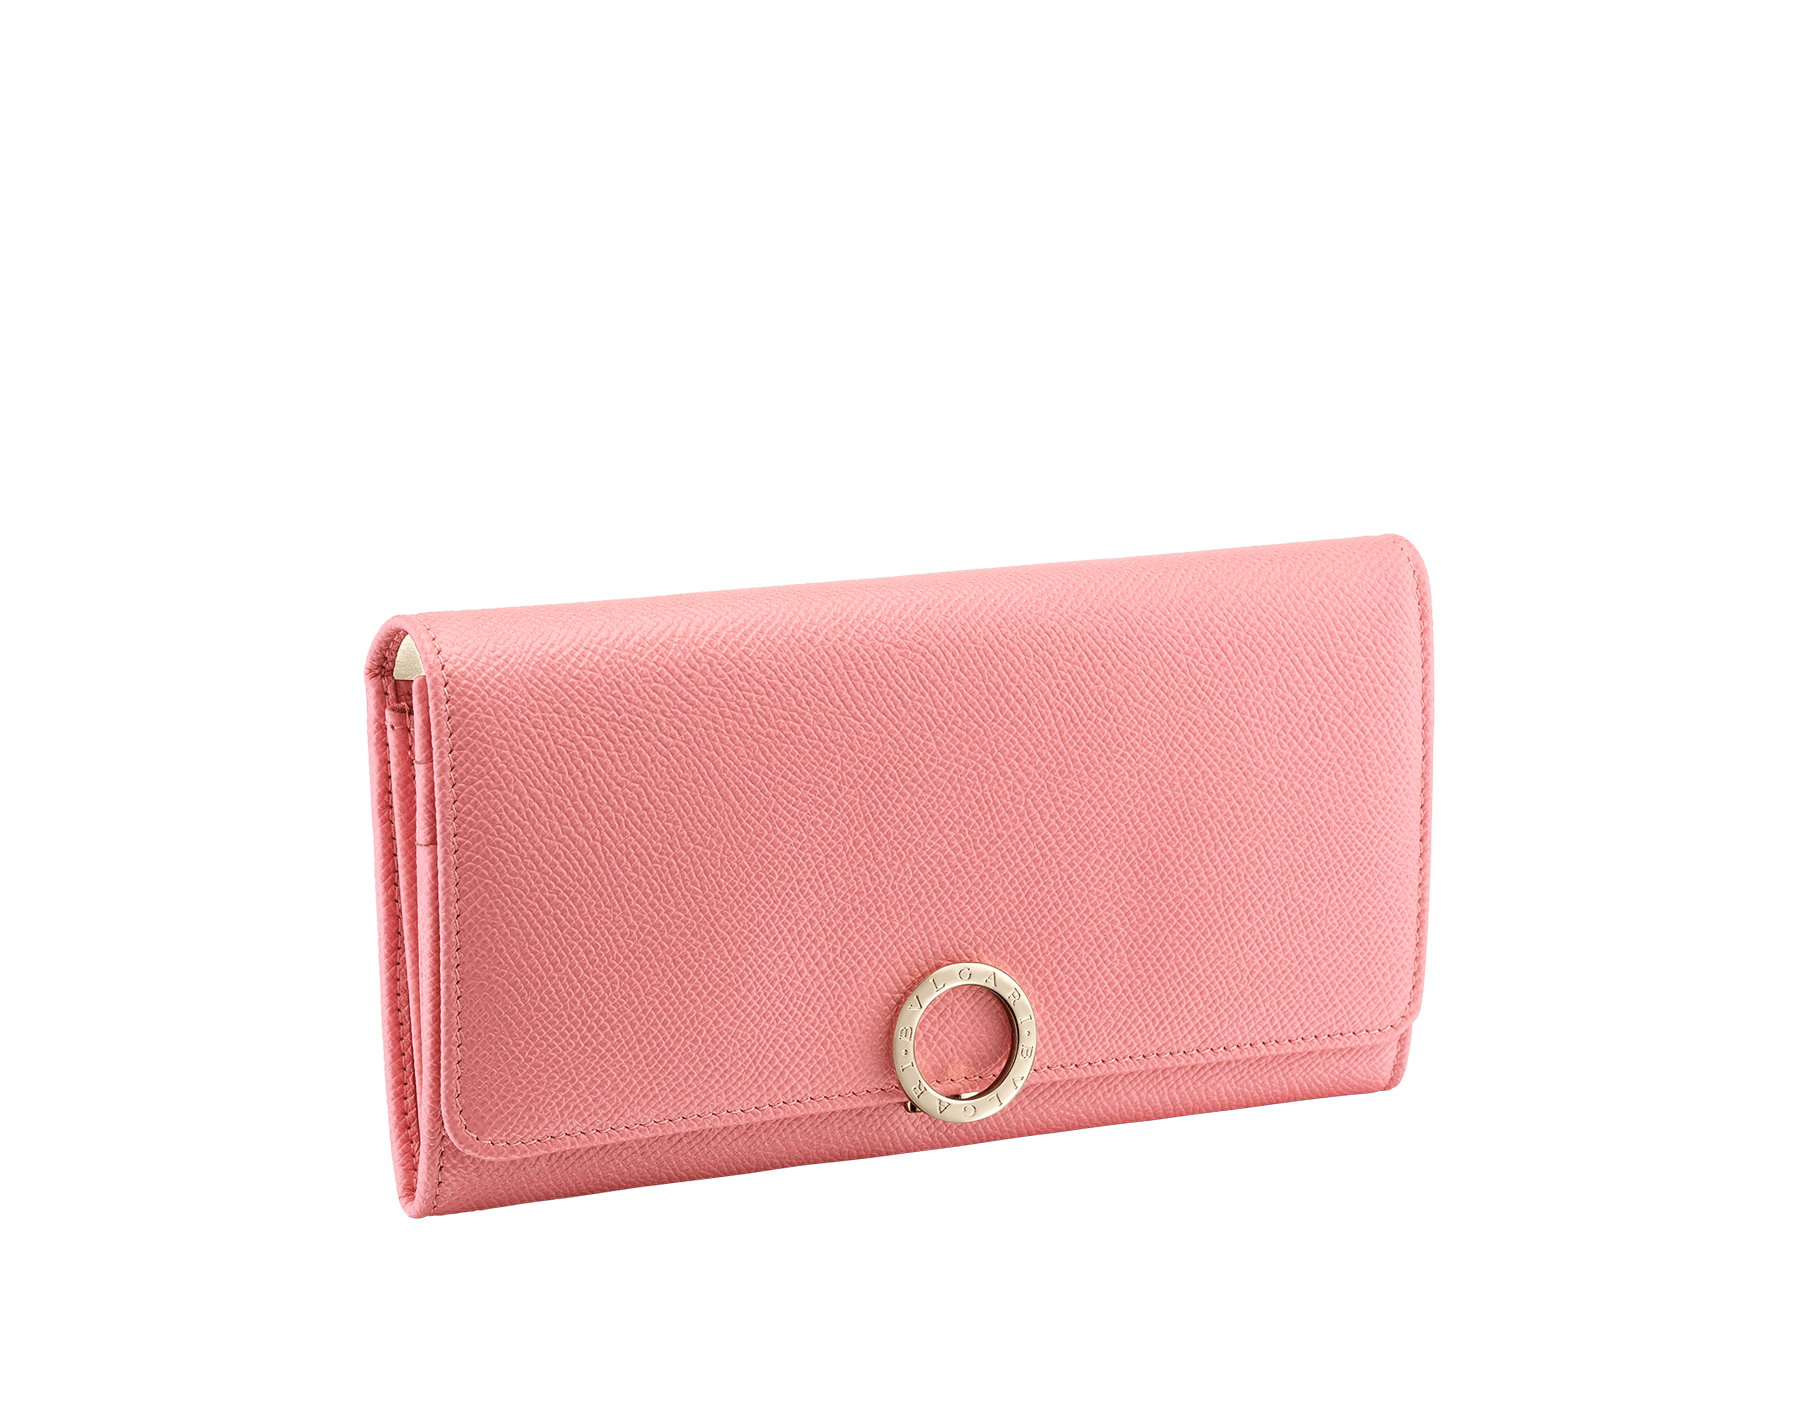 BVLGARI BVLGARI large wallet in mint bright grain calf leather and taffy quartz nappa leather. Iconic logo closure clip in light gold plated brass. 579-WLT-POCHE-16CCa image 1